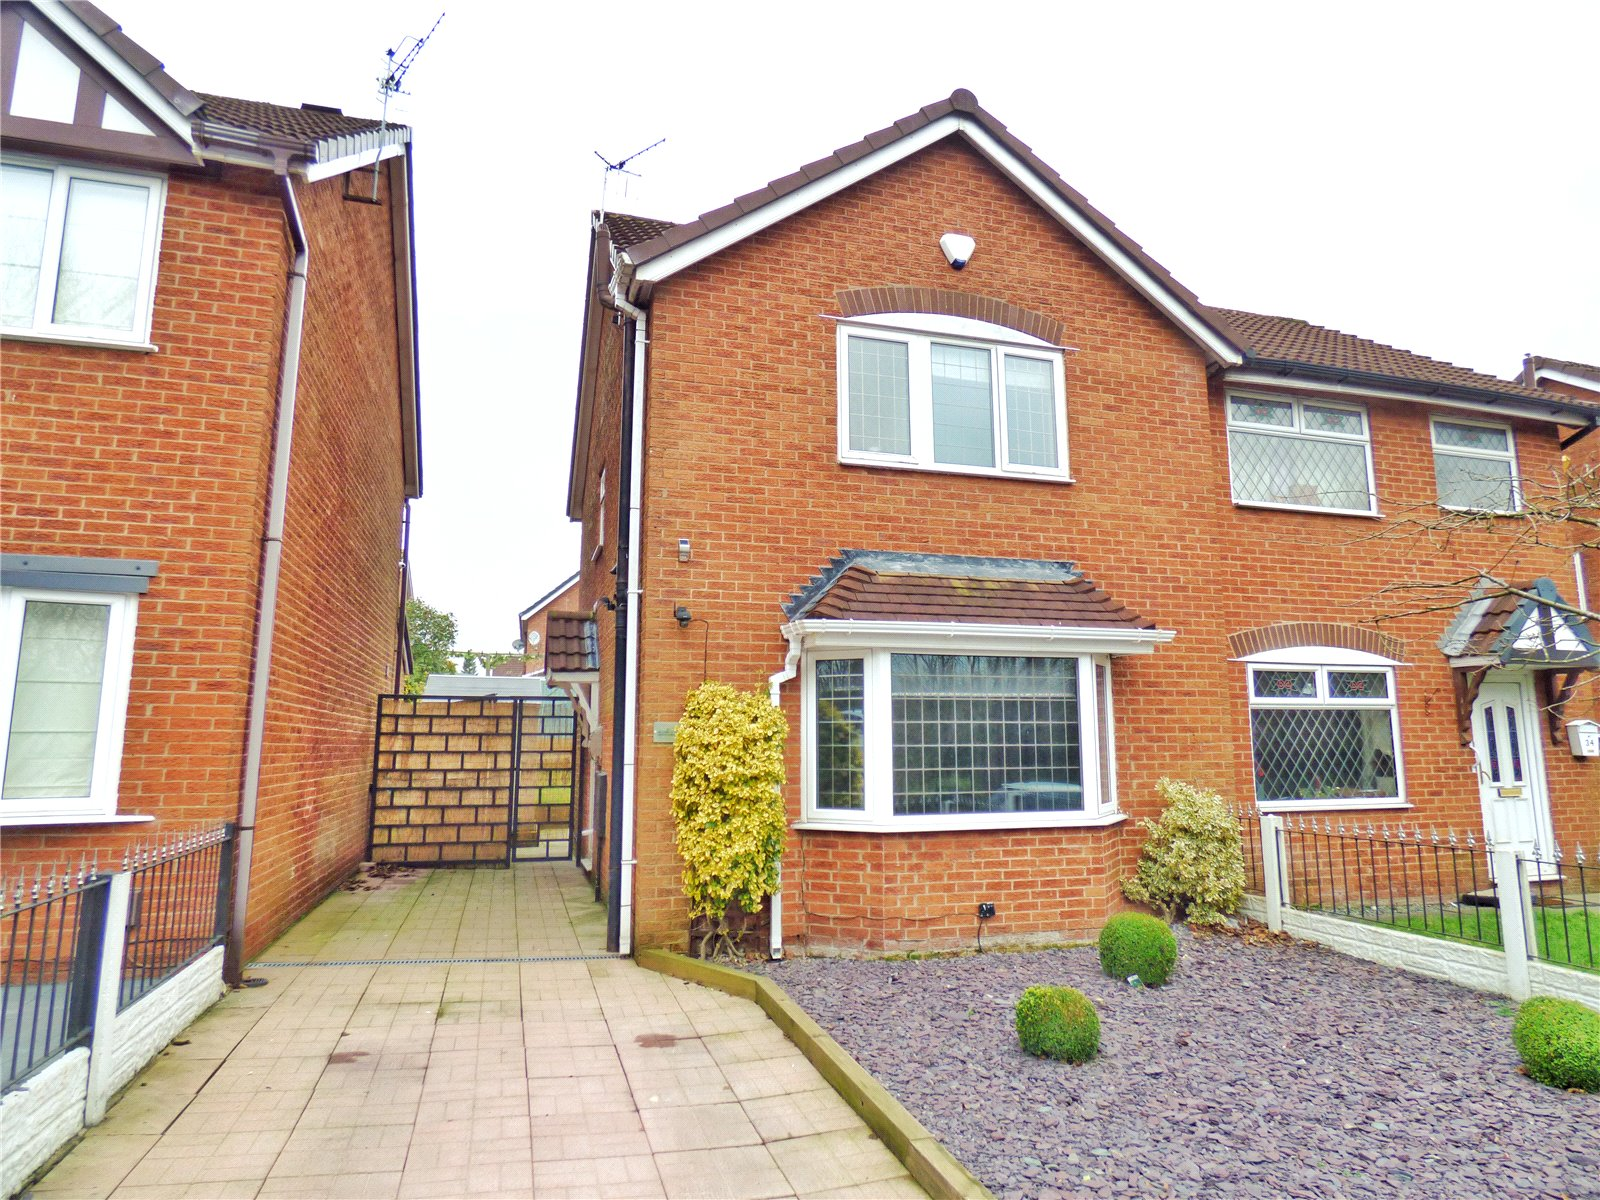 3 Bedrooms Semi Detached House for sale in Breeze Hill Road, Salem, Oldham, Greater Manchester, OL4